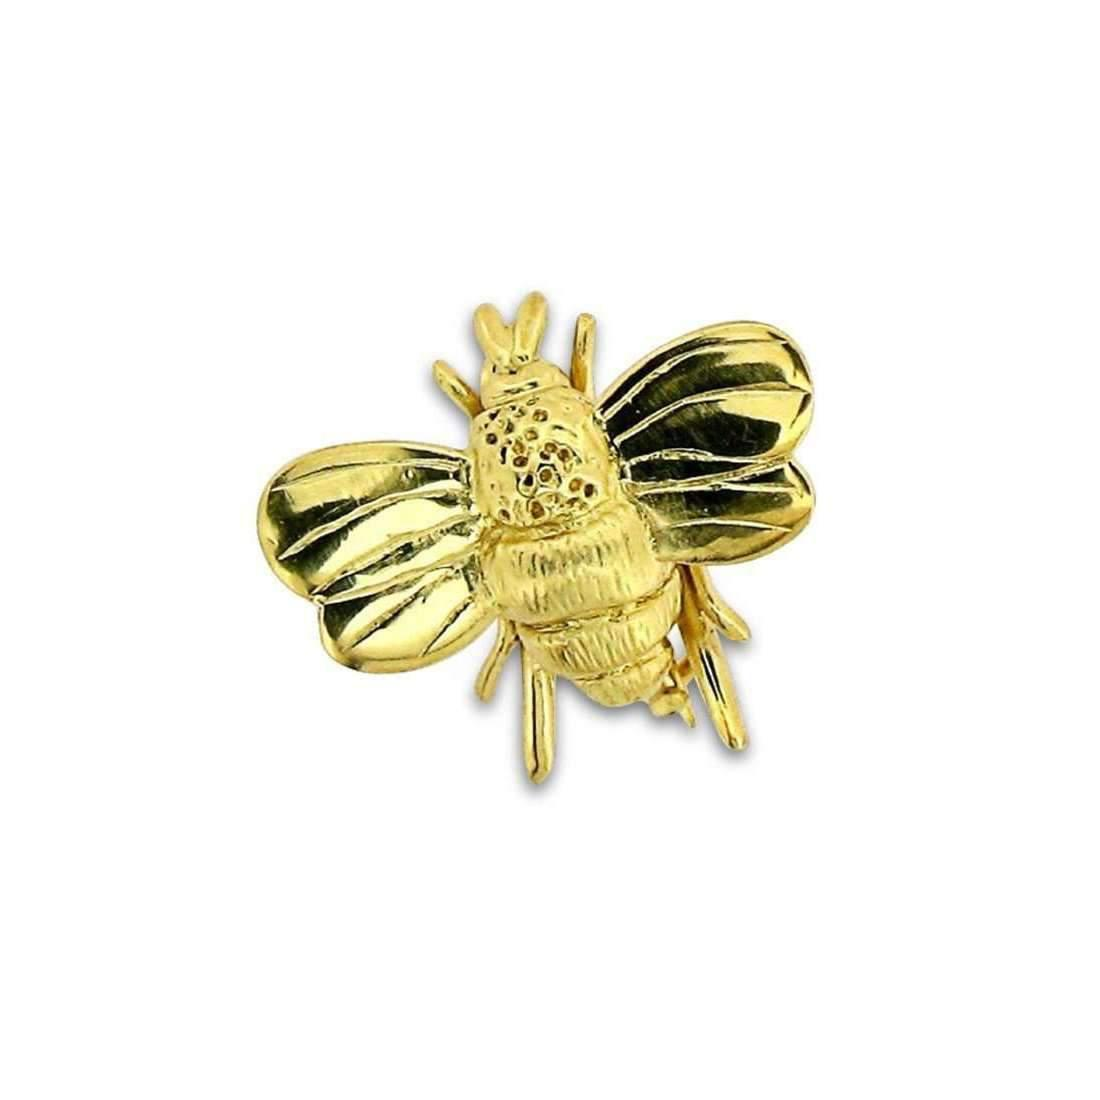 Will Bishop Gold Vermeil Bumble Bee Brooch tUT1fY3g